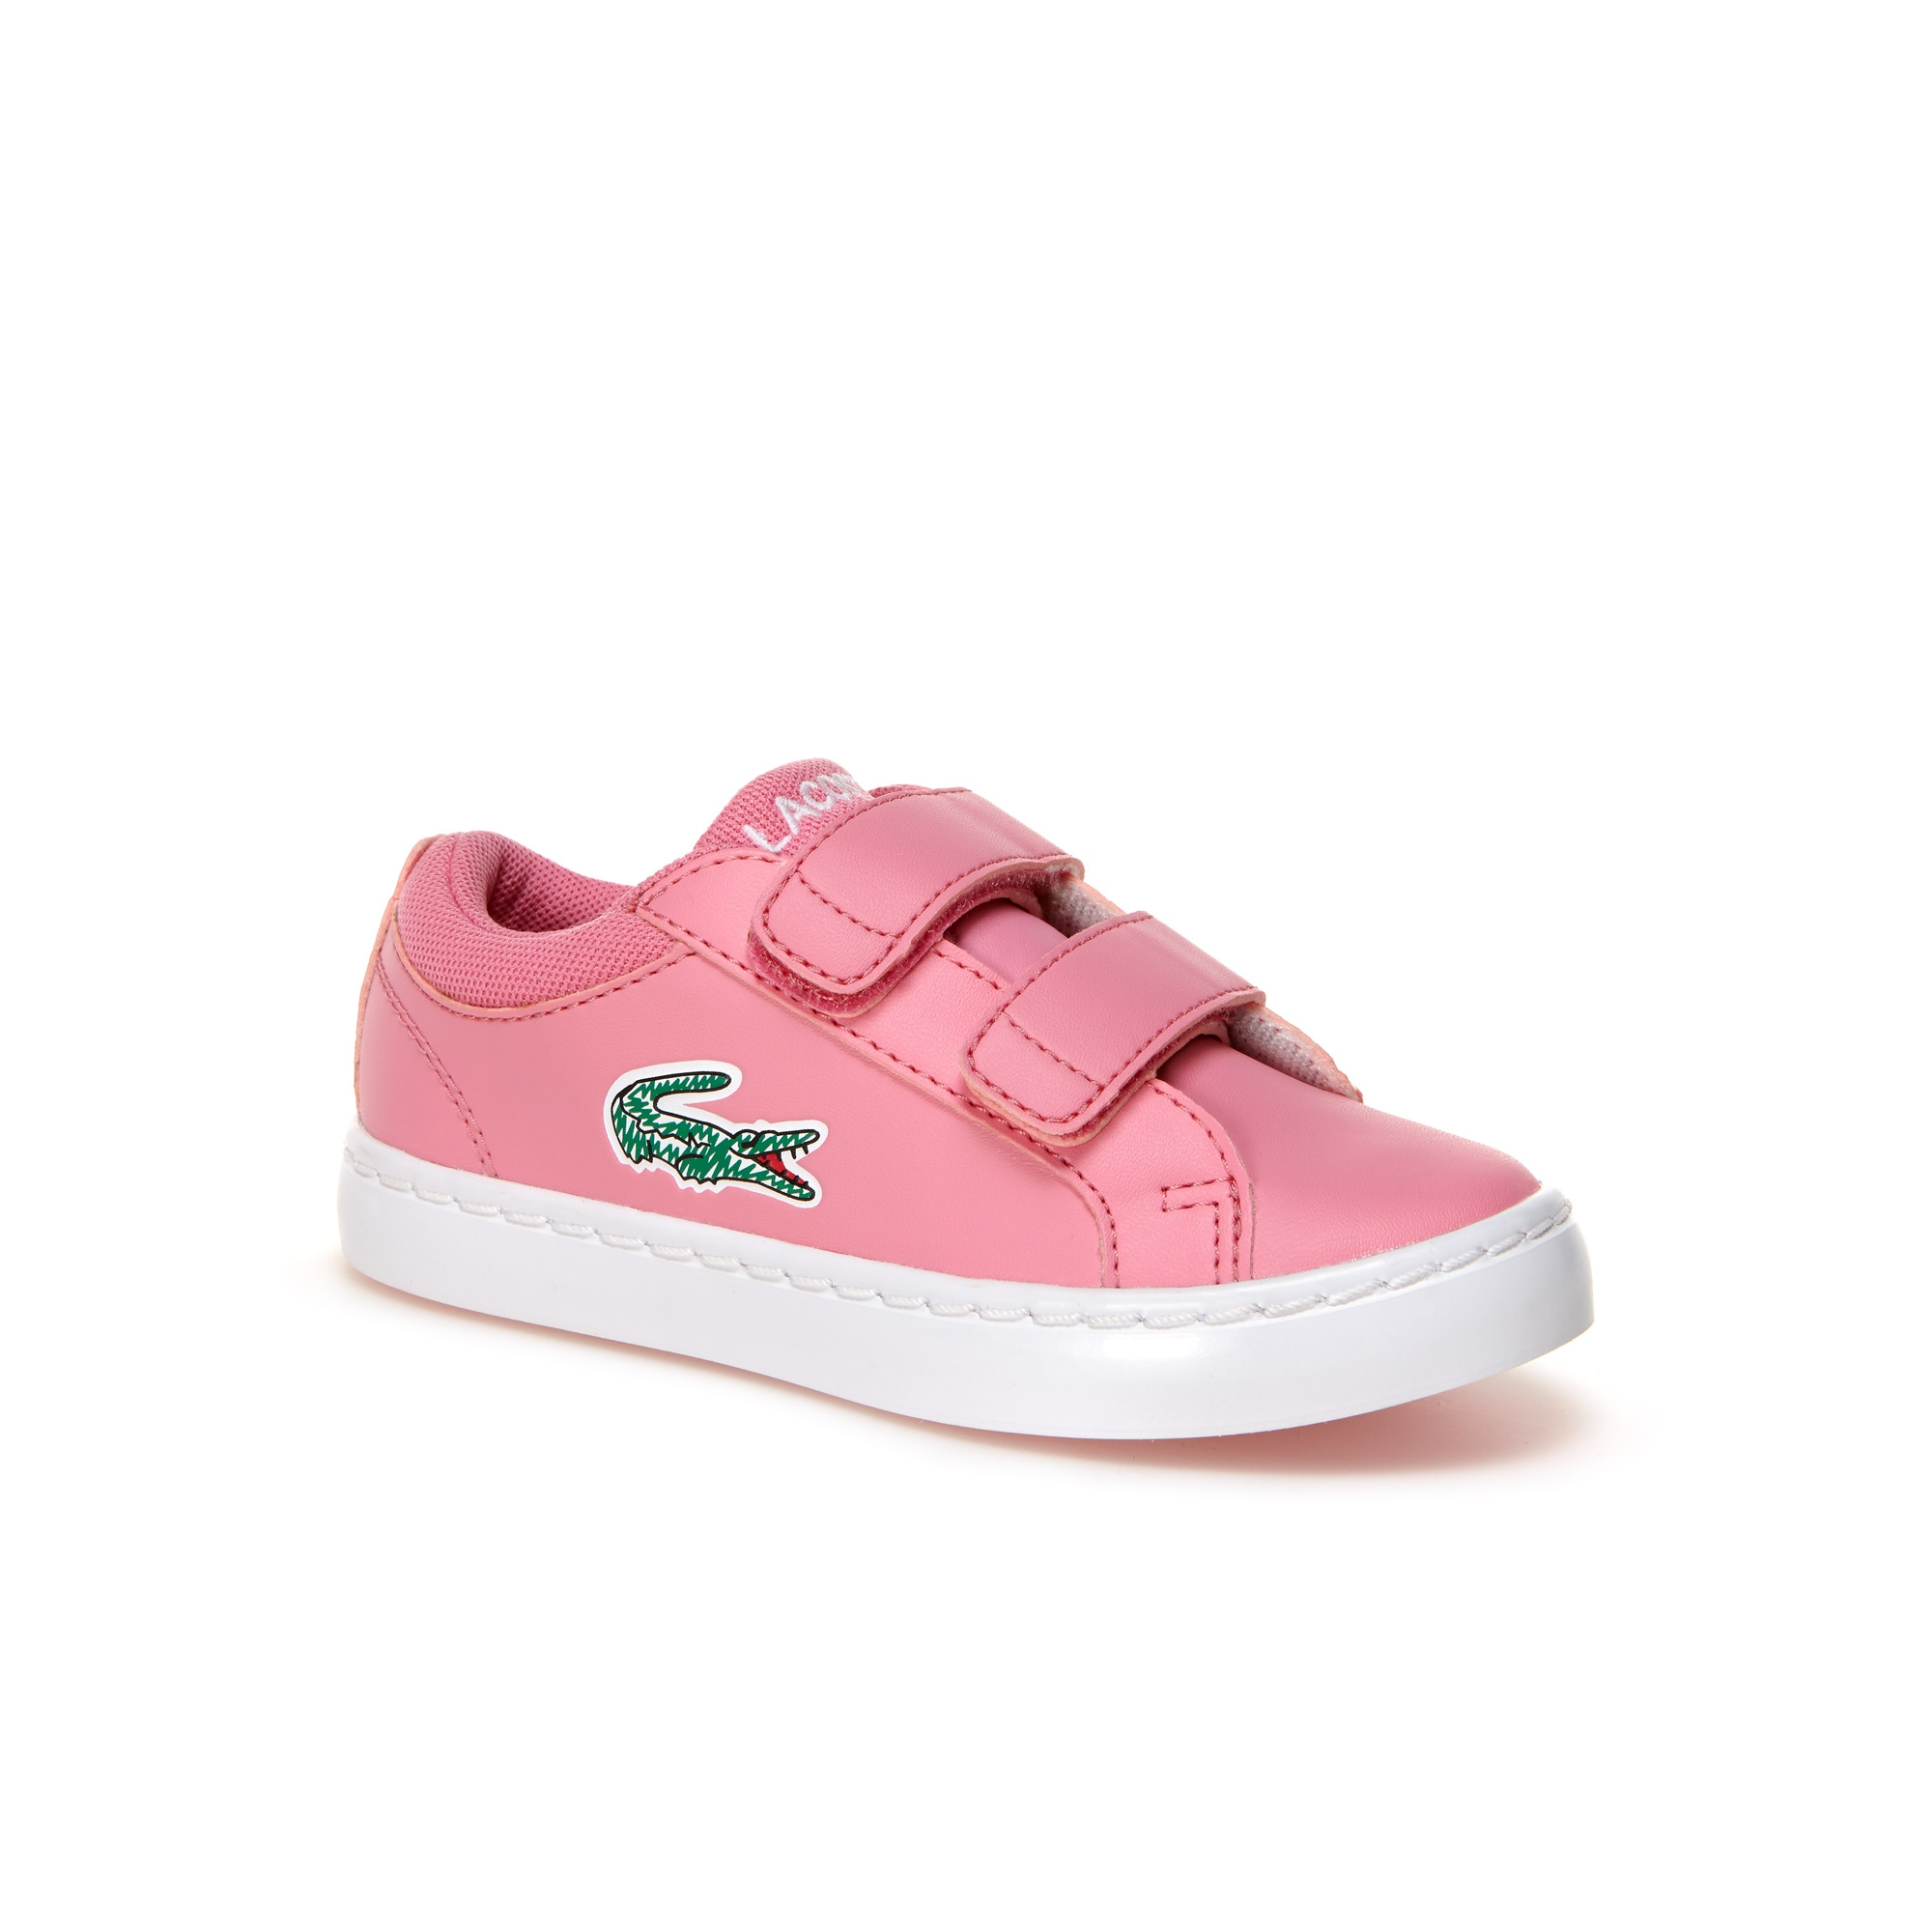 Discount Outlet Locations Free Shipping New Lacoste Straightset Hook and Loop Sneaker(Infants/Toddlers') -Black Synthetic Cheap Fashion Style wKm0BVl